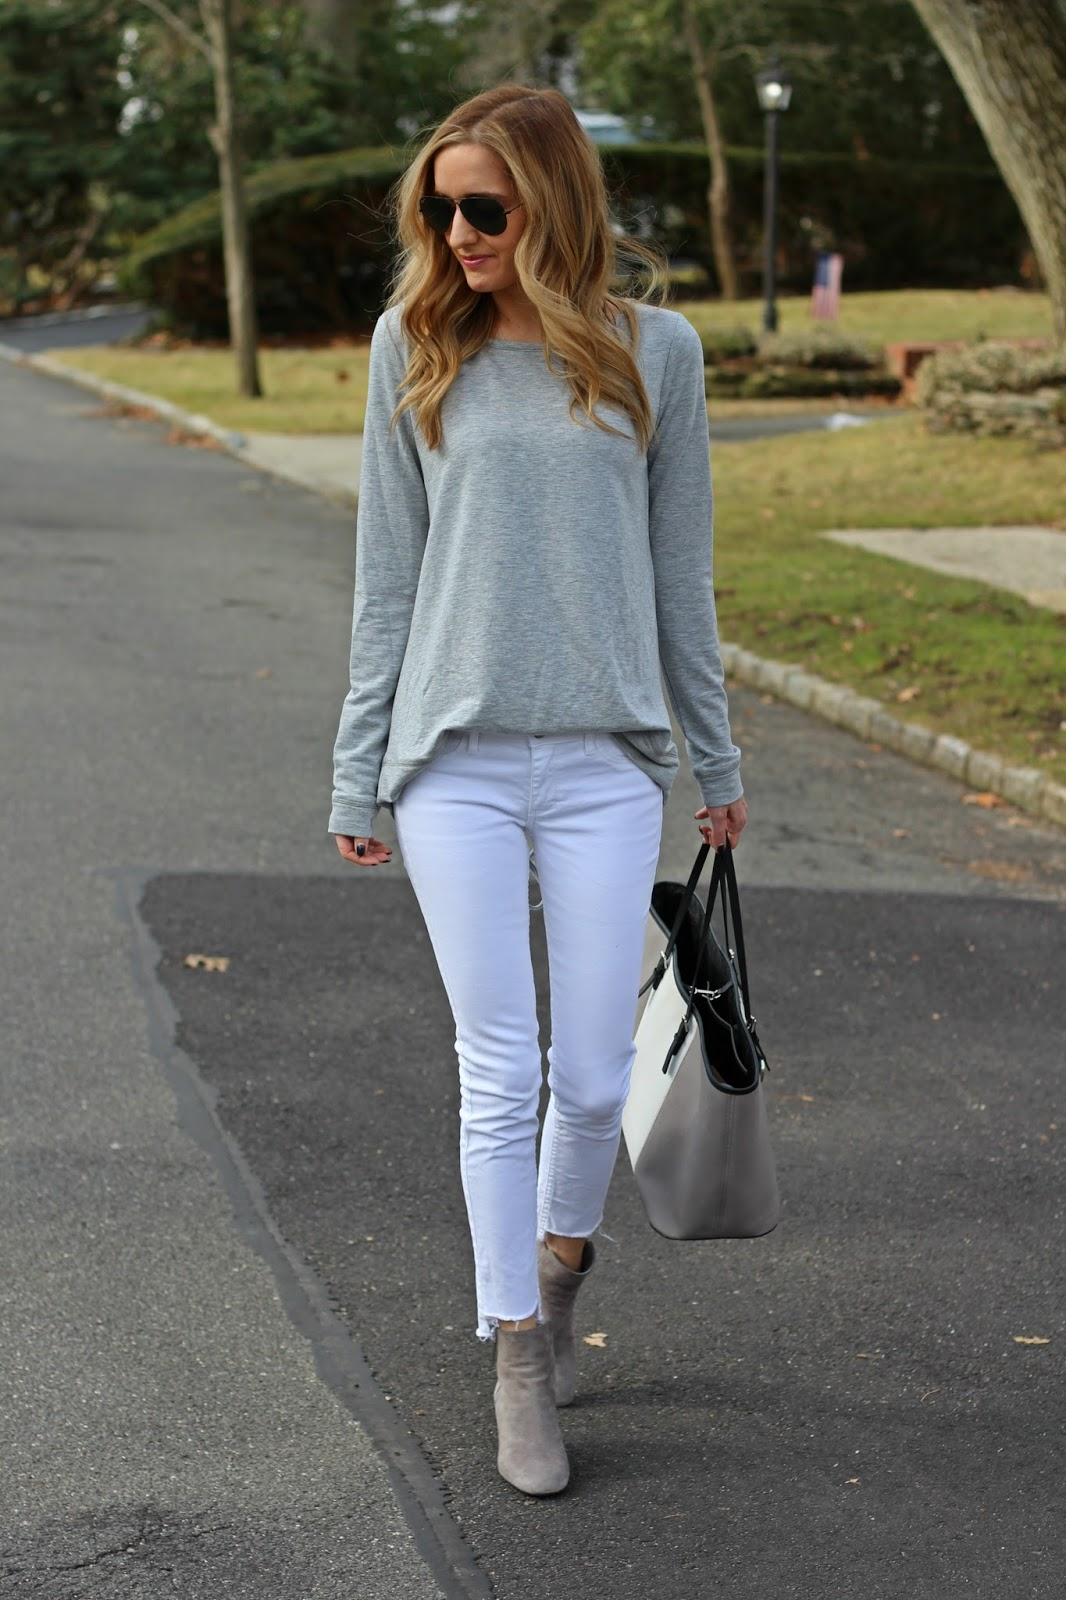 ecb5c0104952 What To Wear Under White Jeans